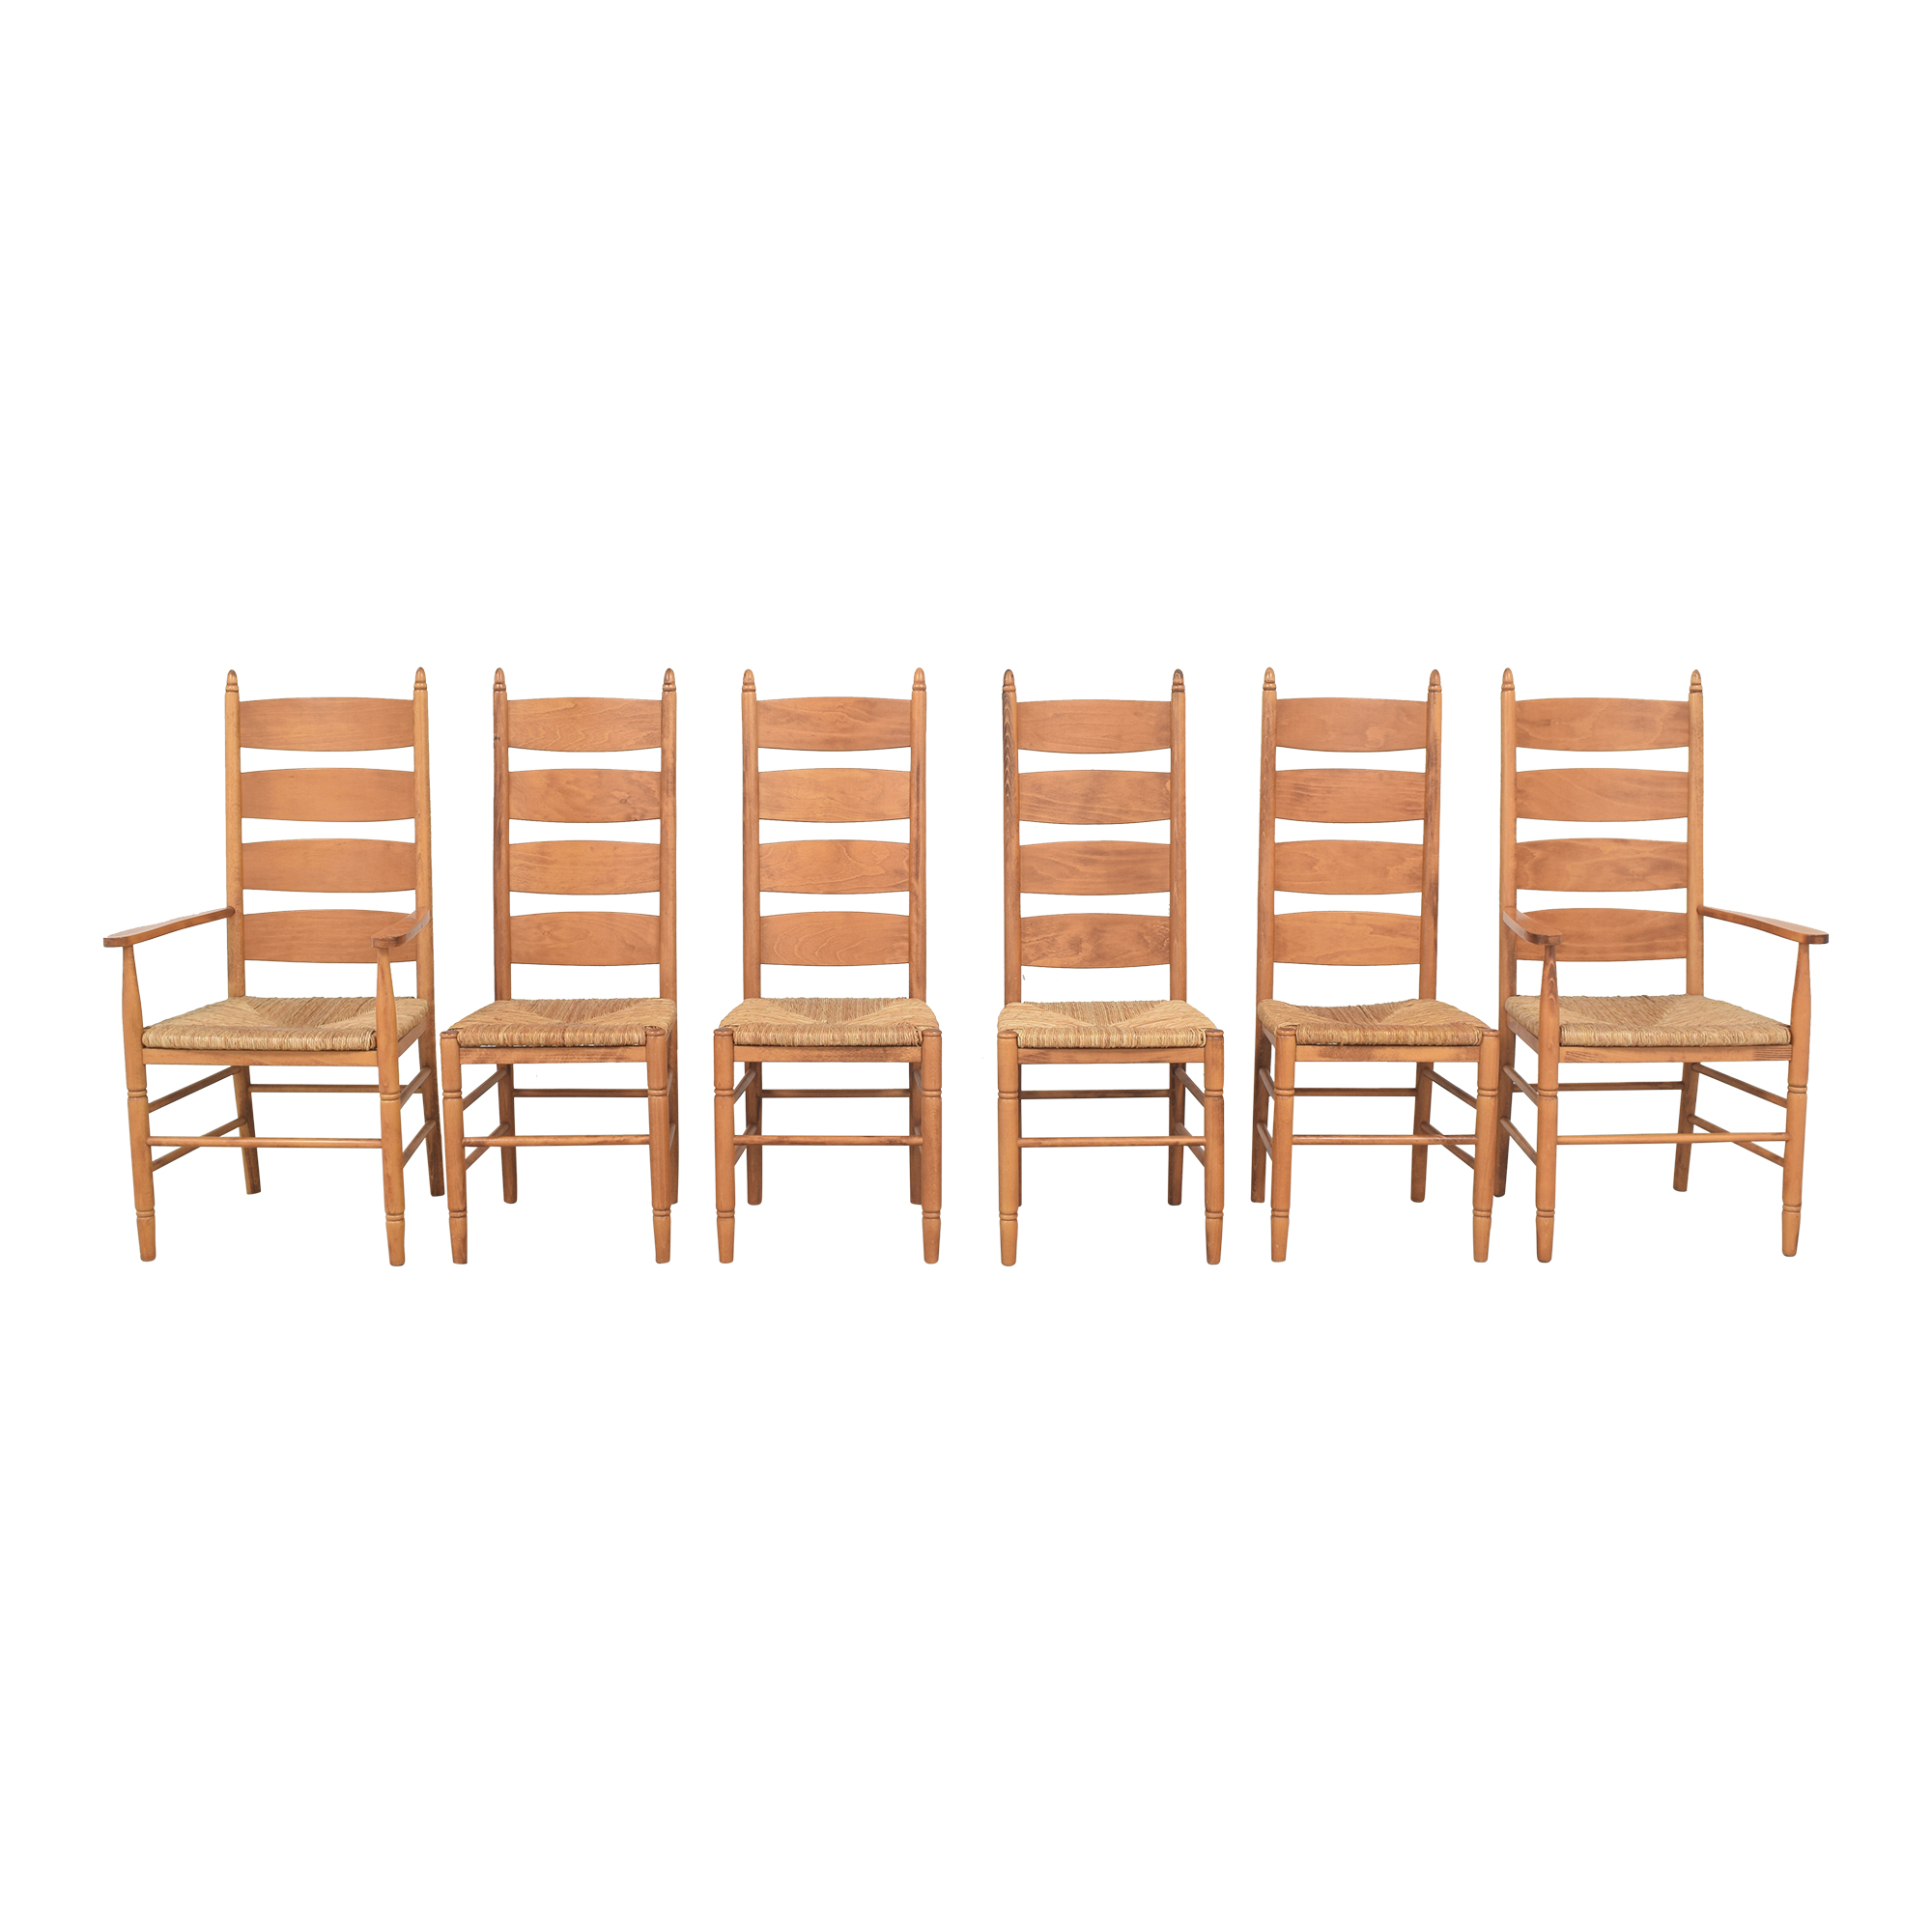 shop Pottery Barn Ladder Back Dining Chairs Pottery Barn Chairs